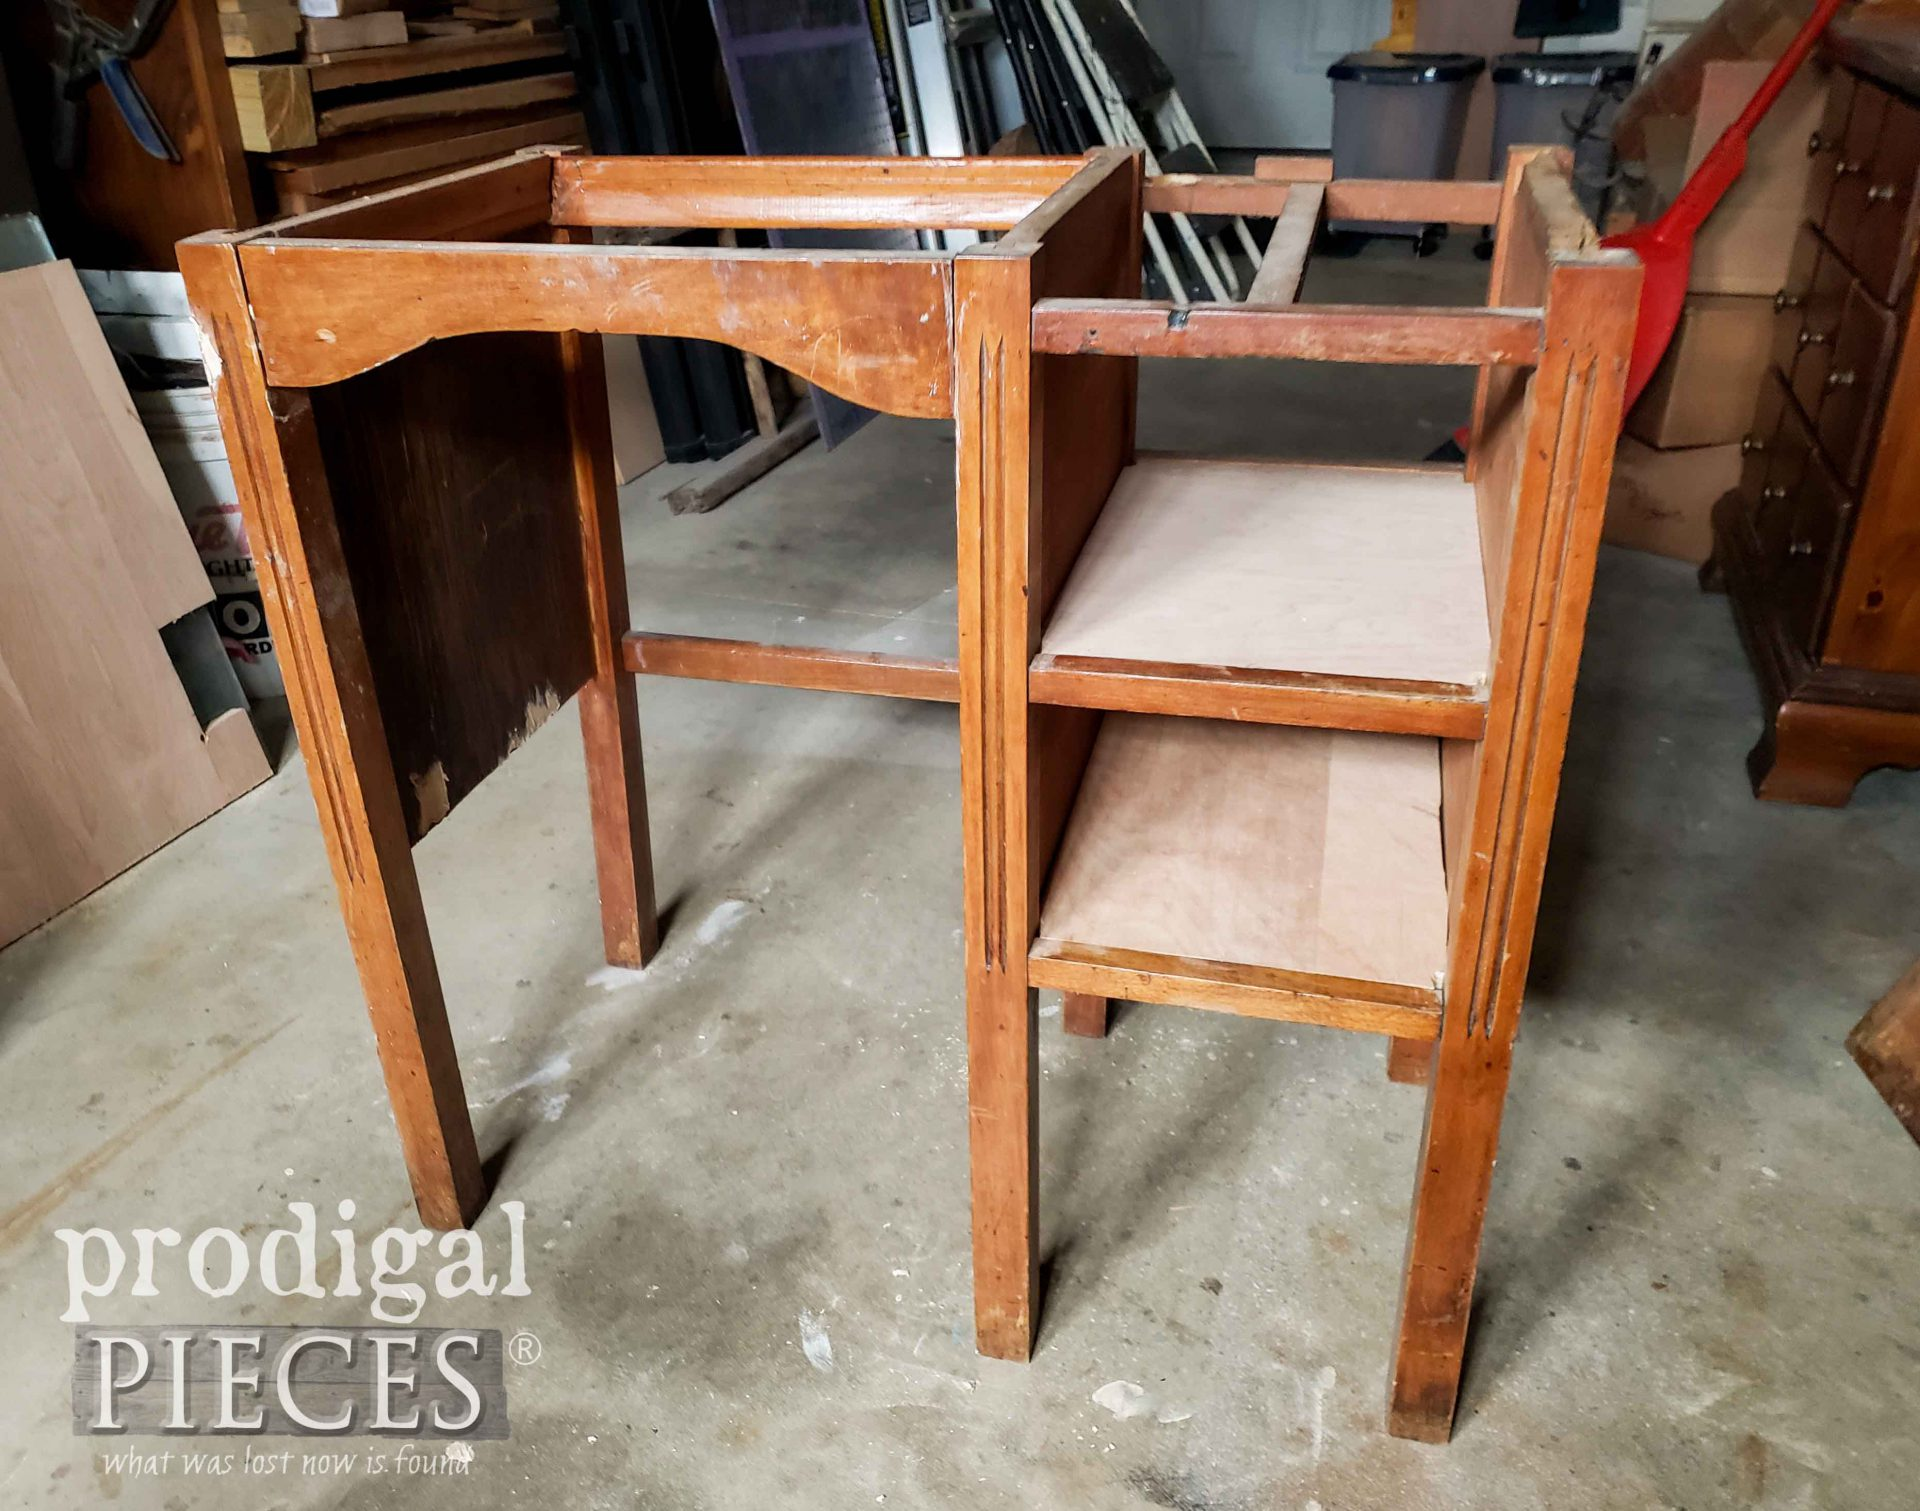 Upcycled Kids Desk with Shelves | prodigalpieces.com